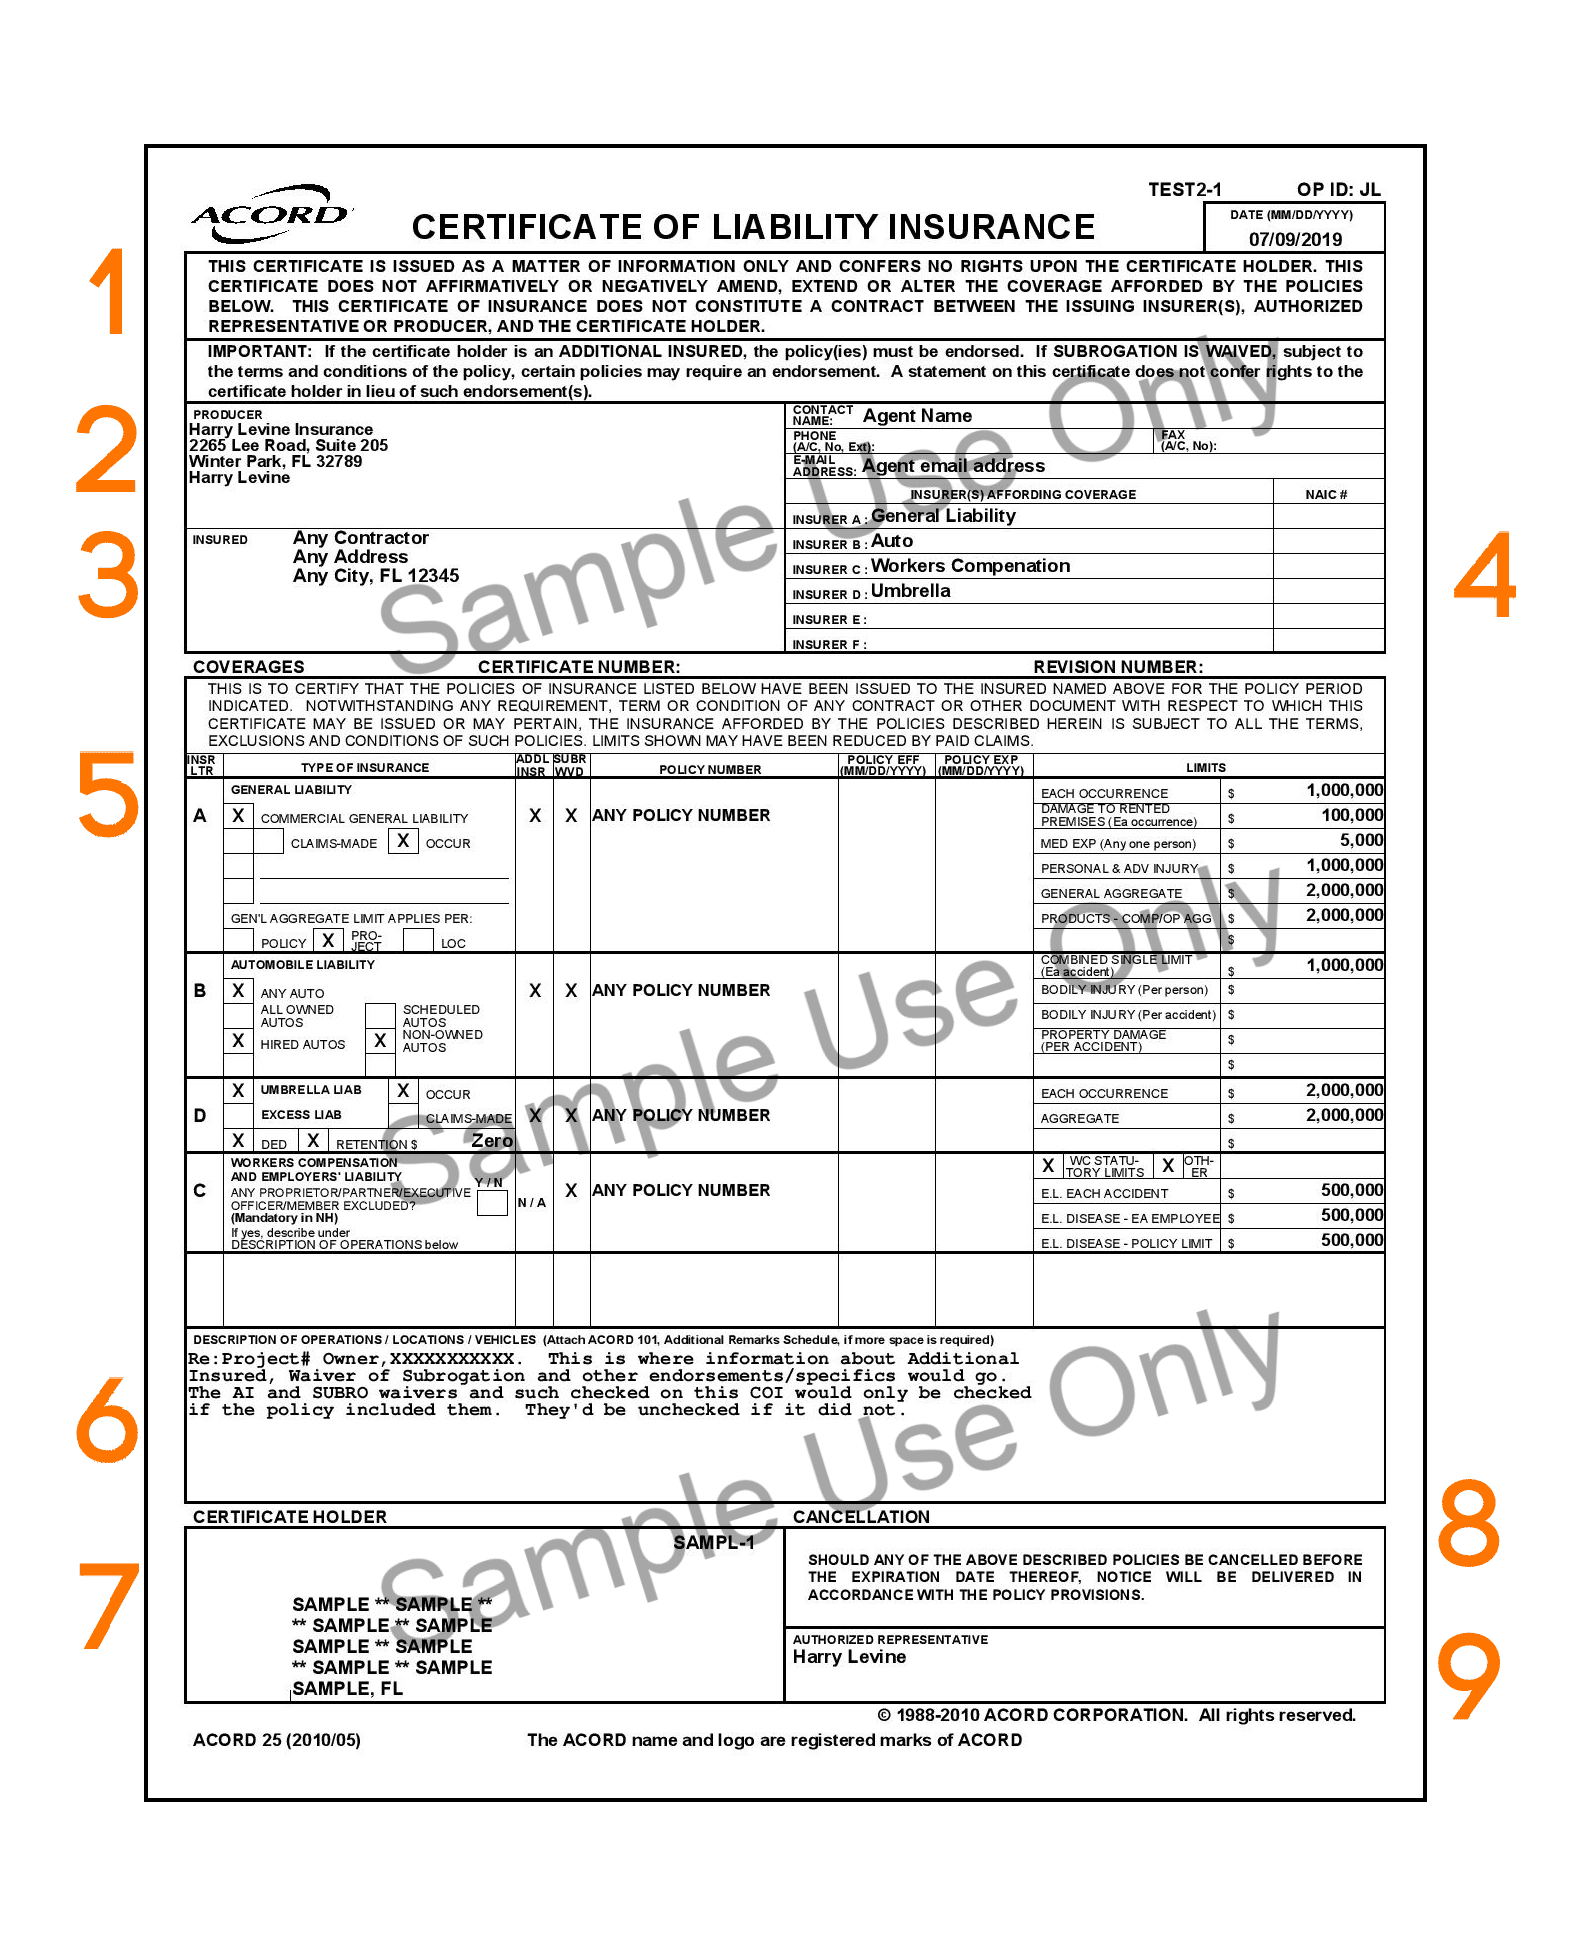 Sample Certificate of Insurance